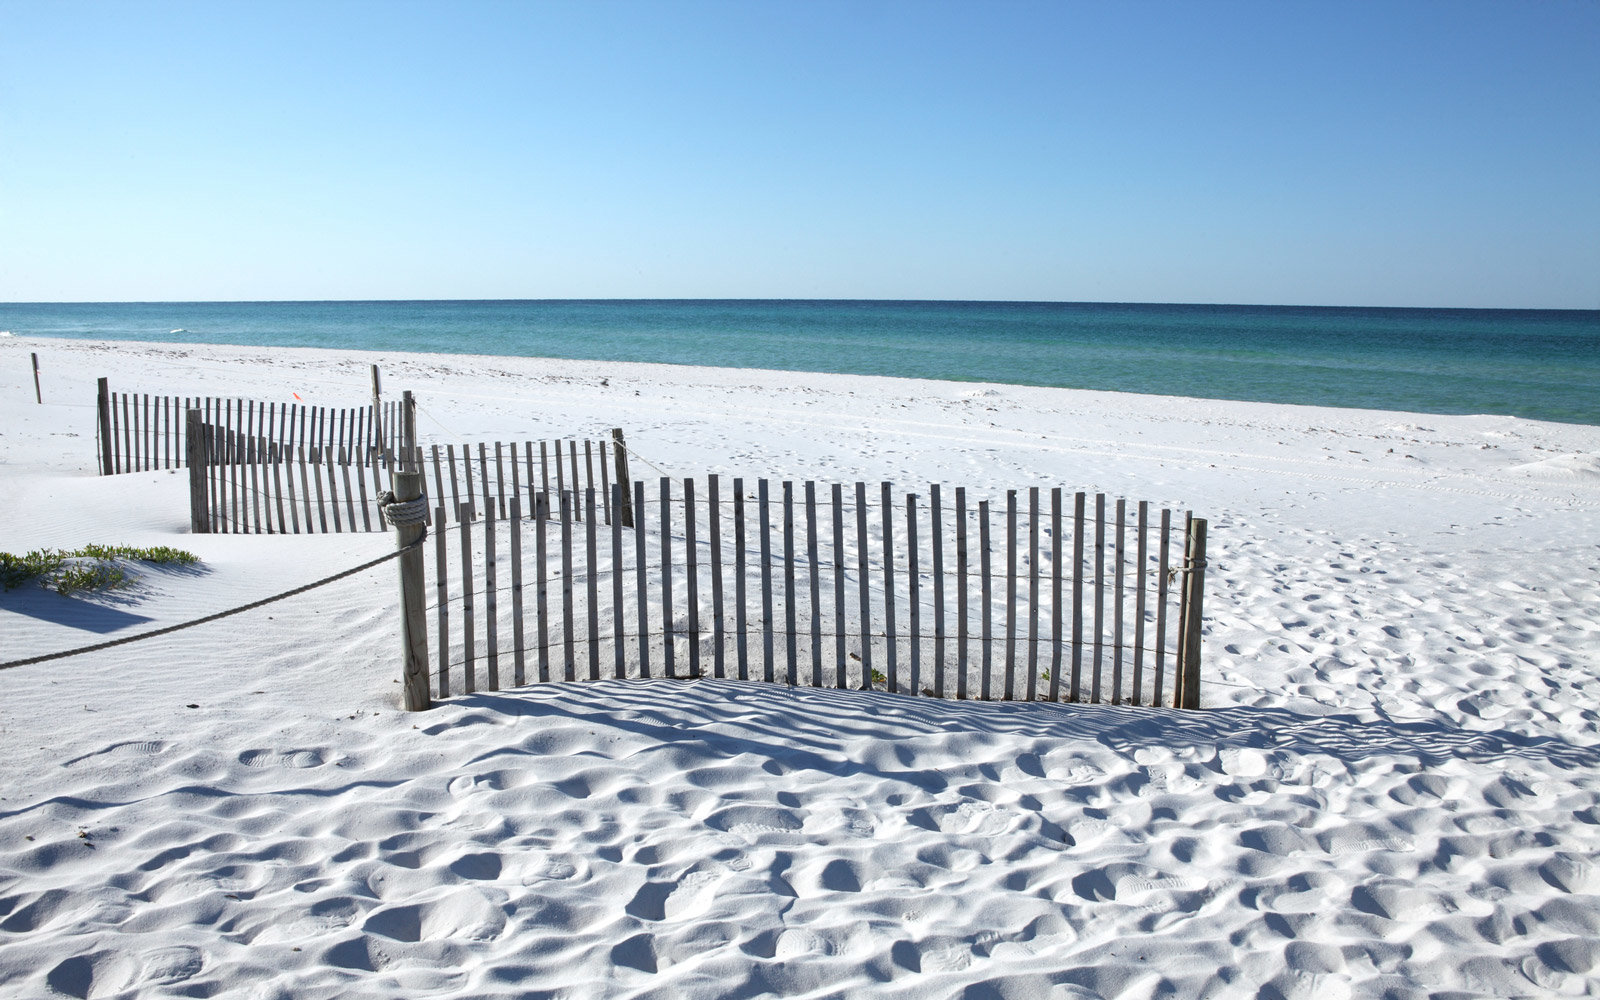 Fences hinder people stepping on seagrasses in Grayton Beach, Florida.